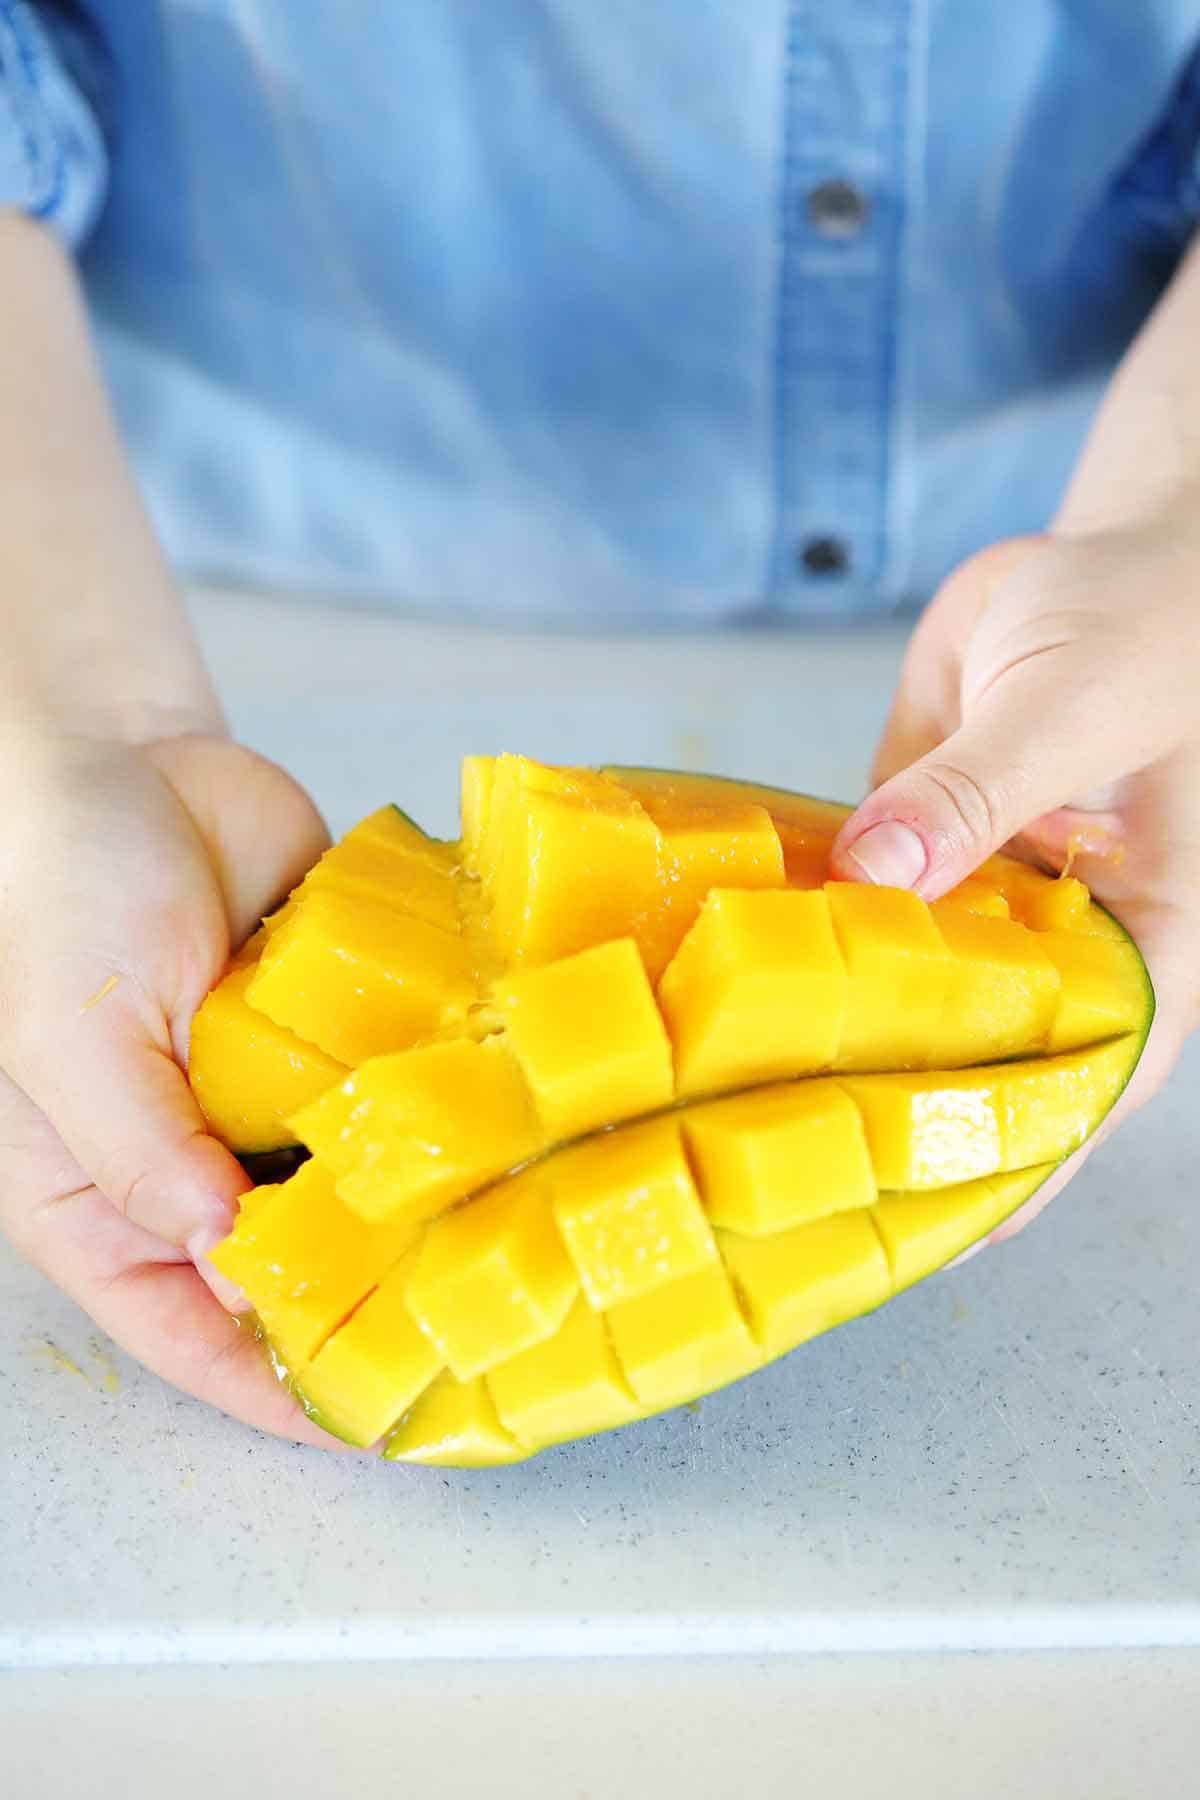 A mango half cut into cubes in the peel.